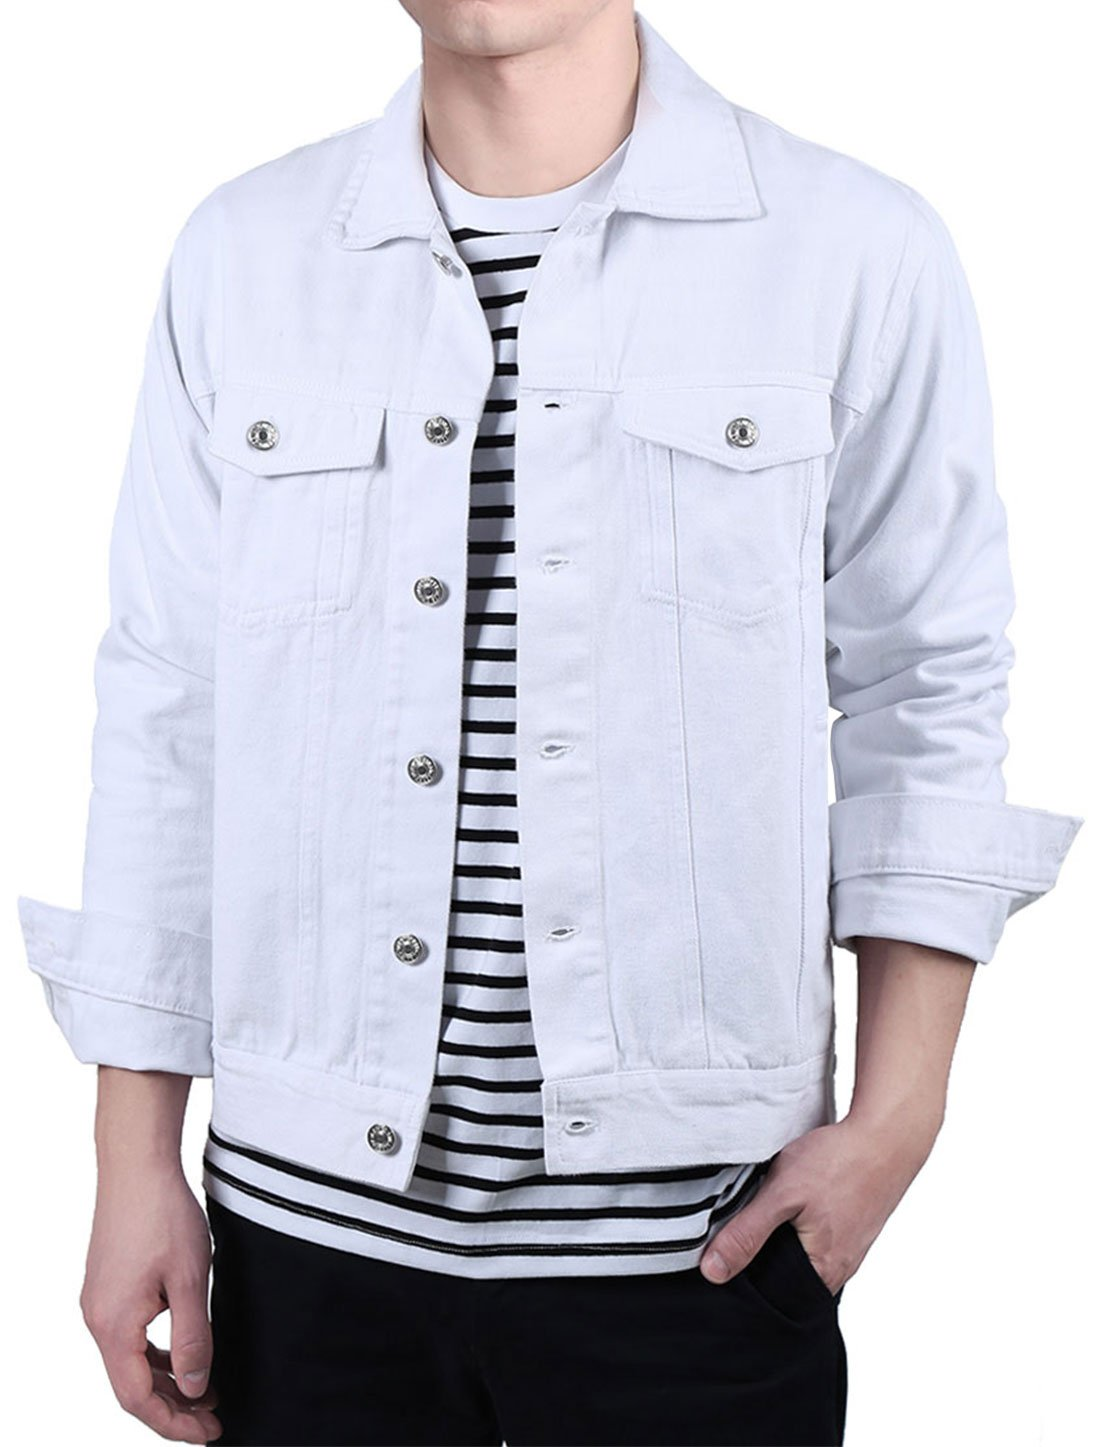 uxcell Men Button Down Solid Color Long Sleeve Casual Denim Trucker Jeans Jacket White M US 40 by uxcell